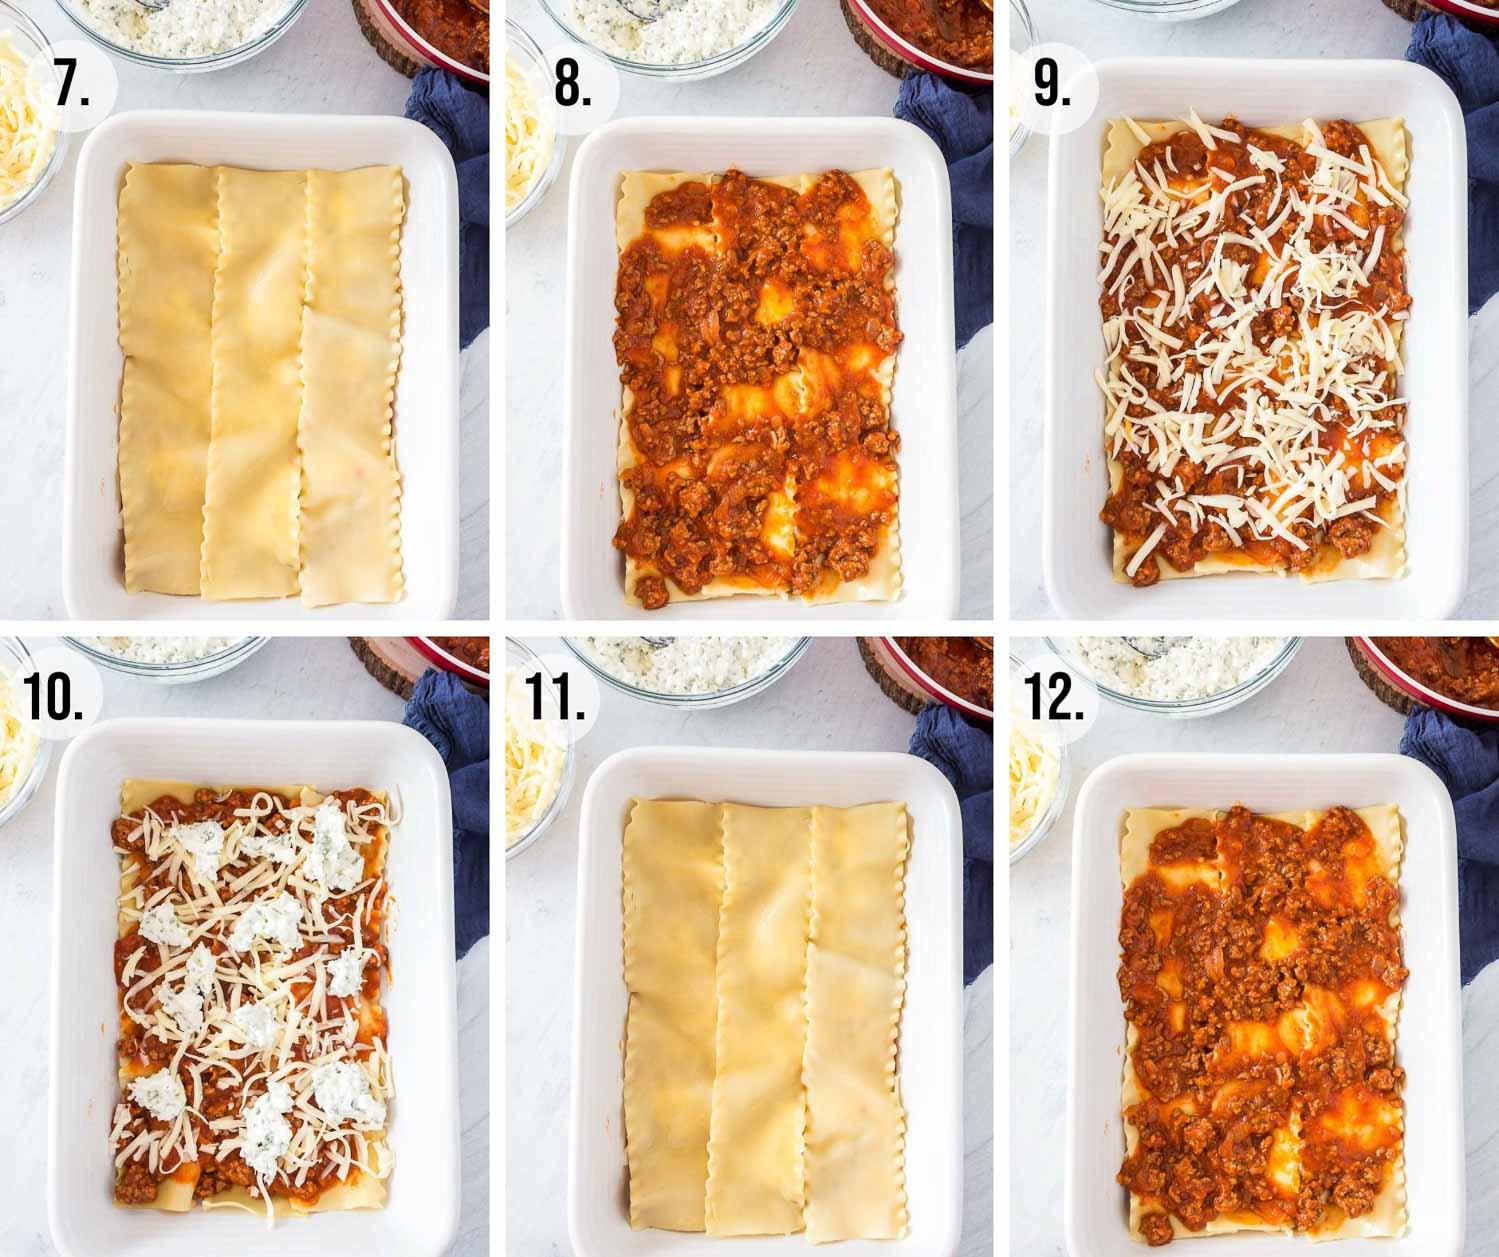 Process shots 7-12 of the making of lasagna. Adding noodles, sauce, cheese layers and then more sauce.